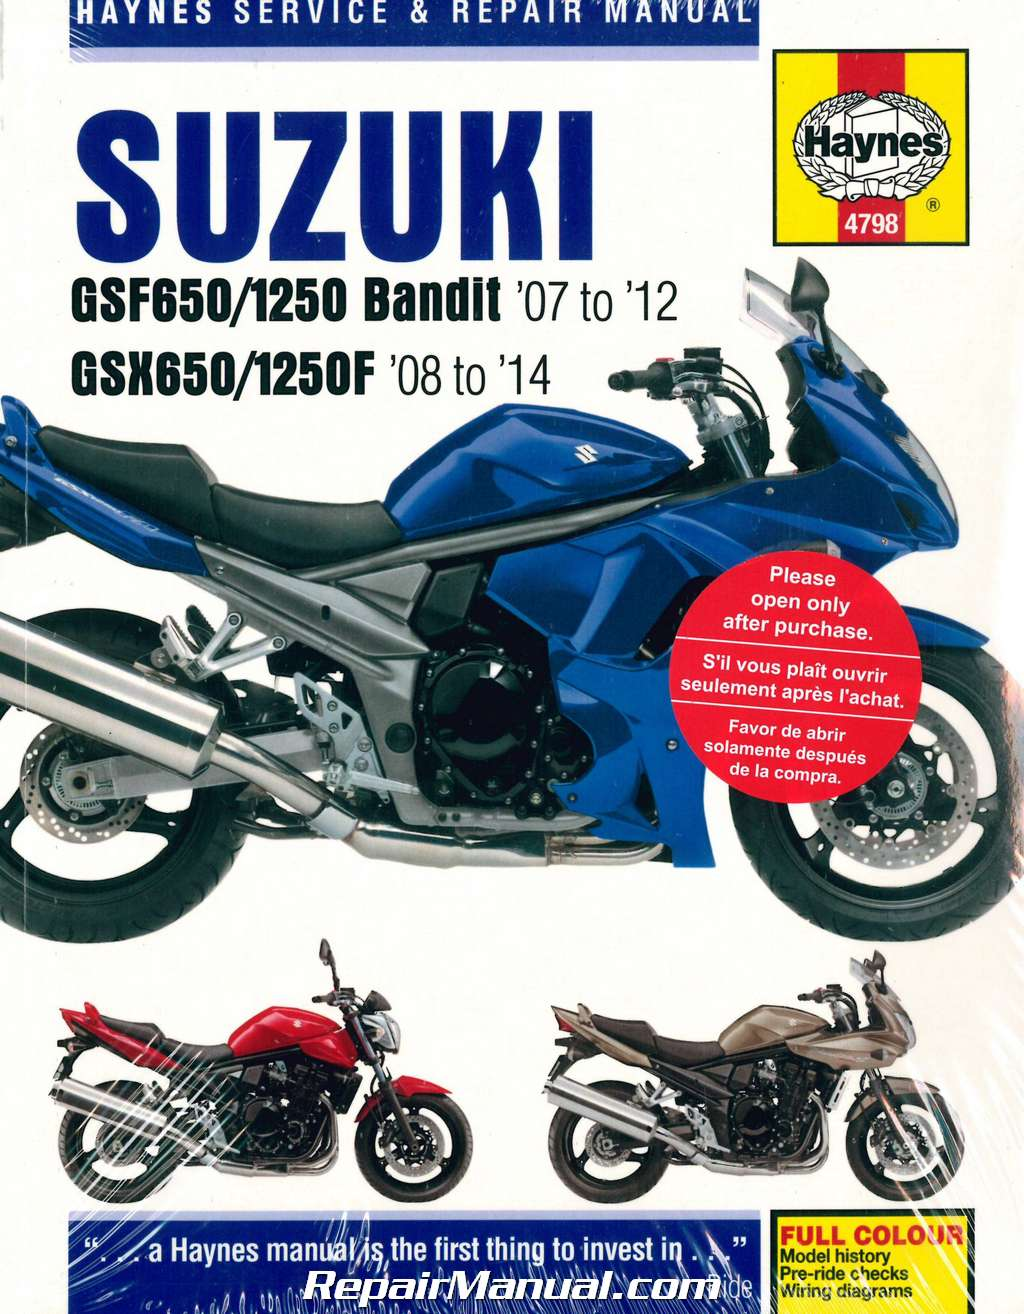 GSF650 GSF1250 Bandit / GSX650F 2007-2014 Suzuki Motorcycle Repair Manual  Haynes